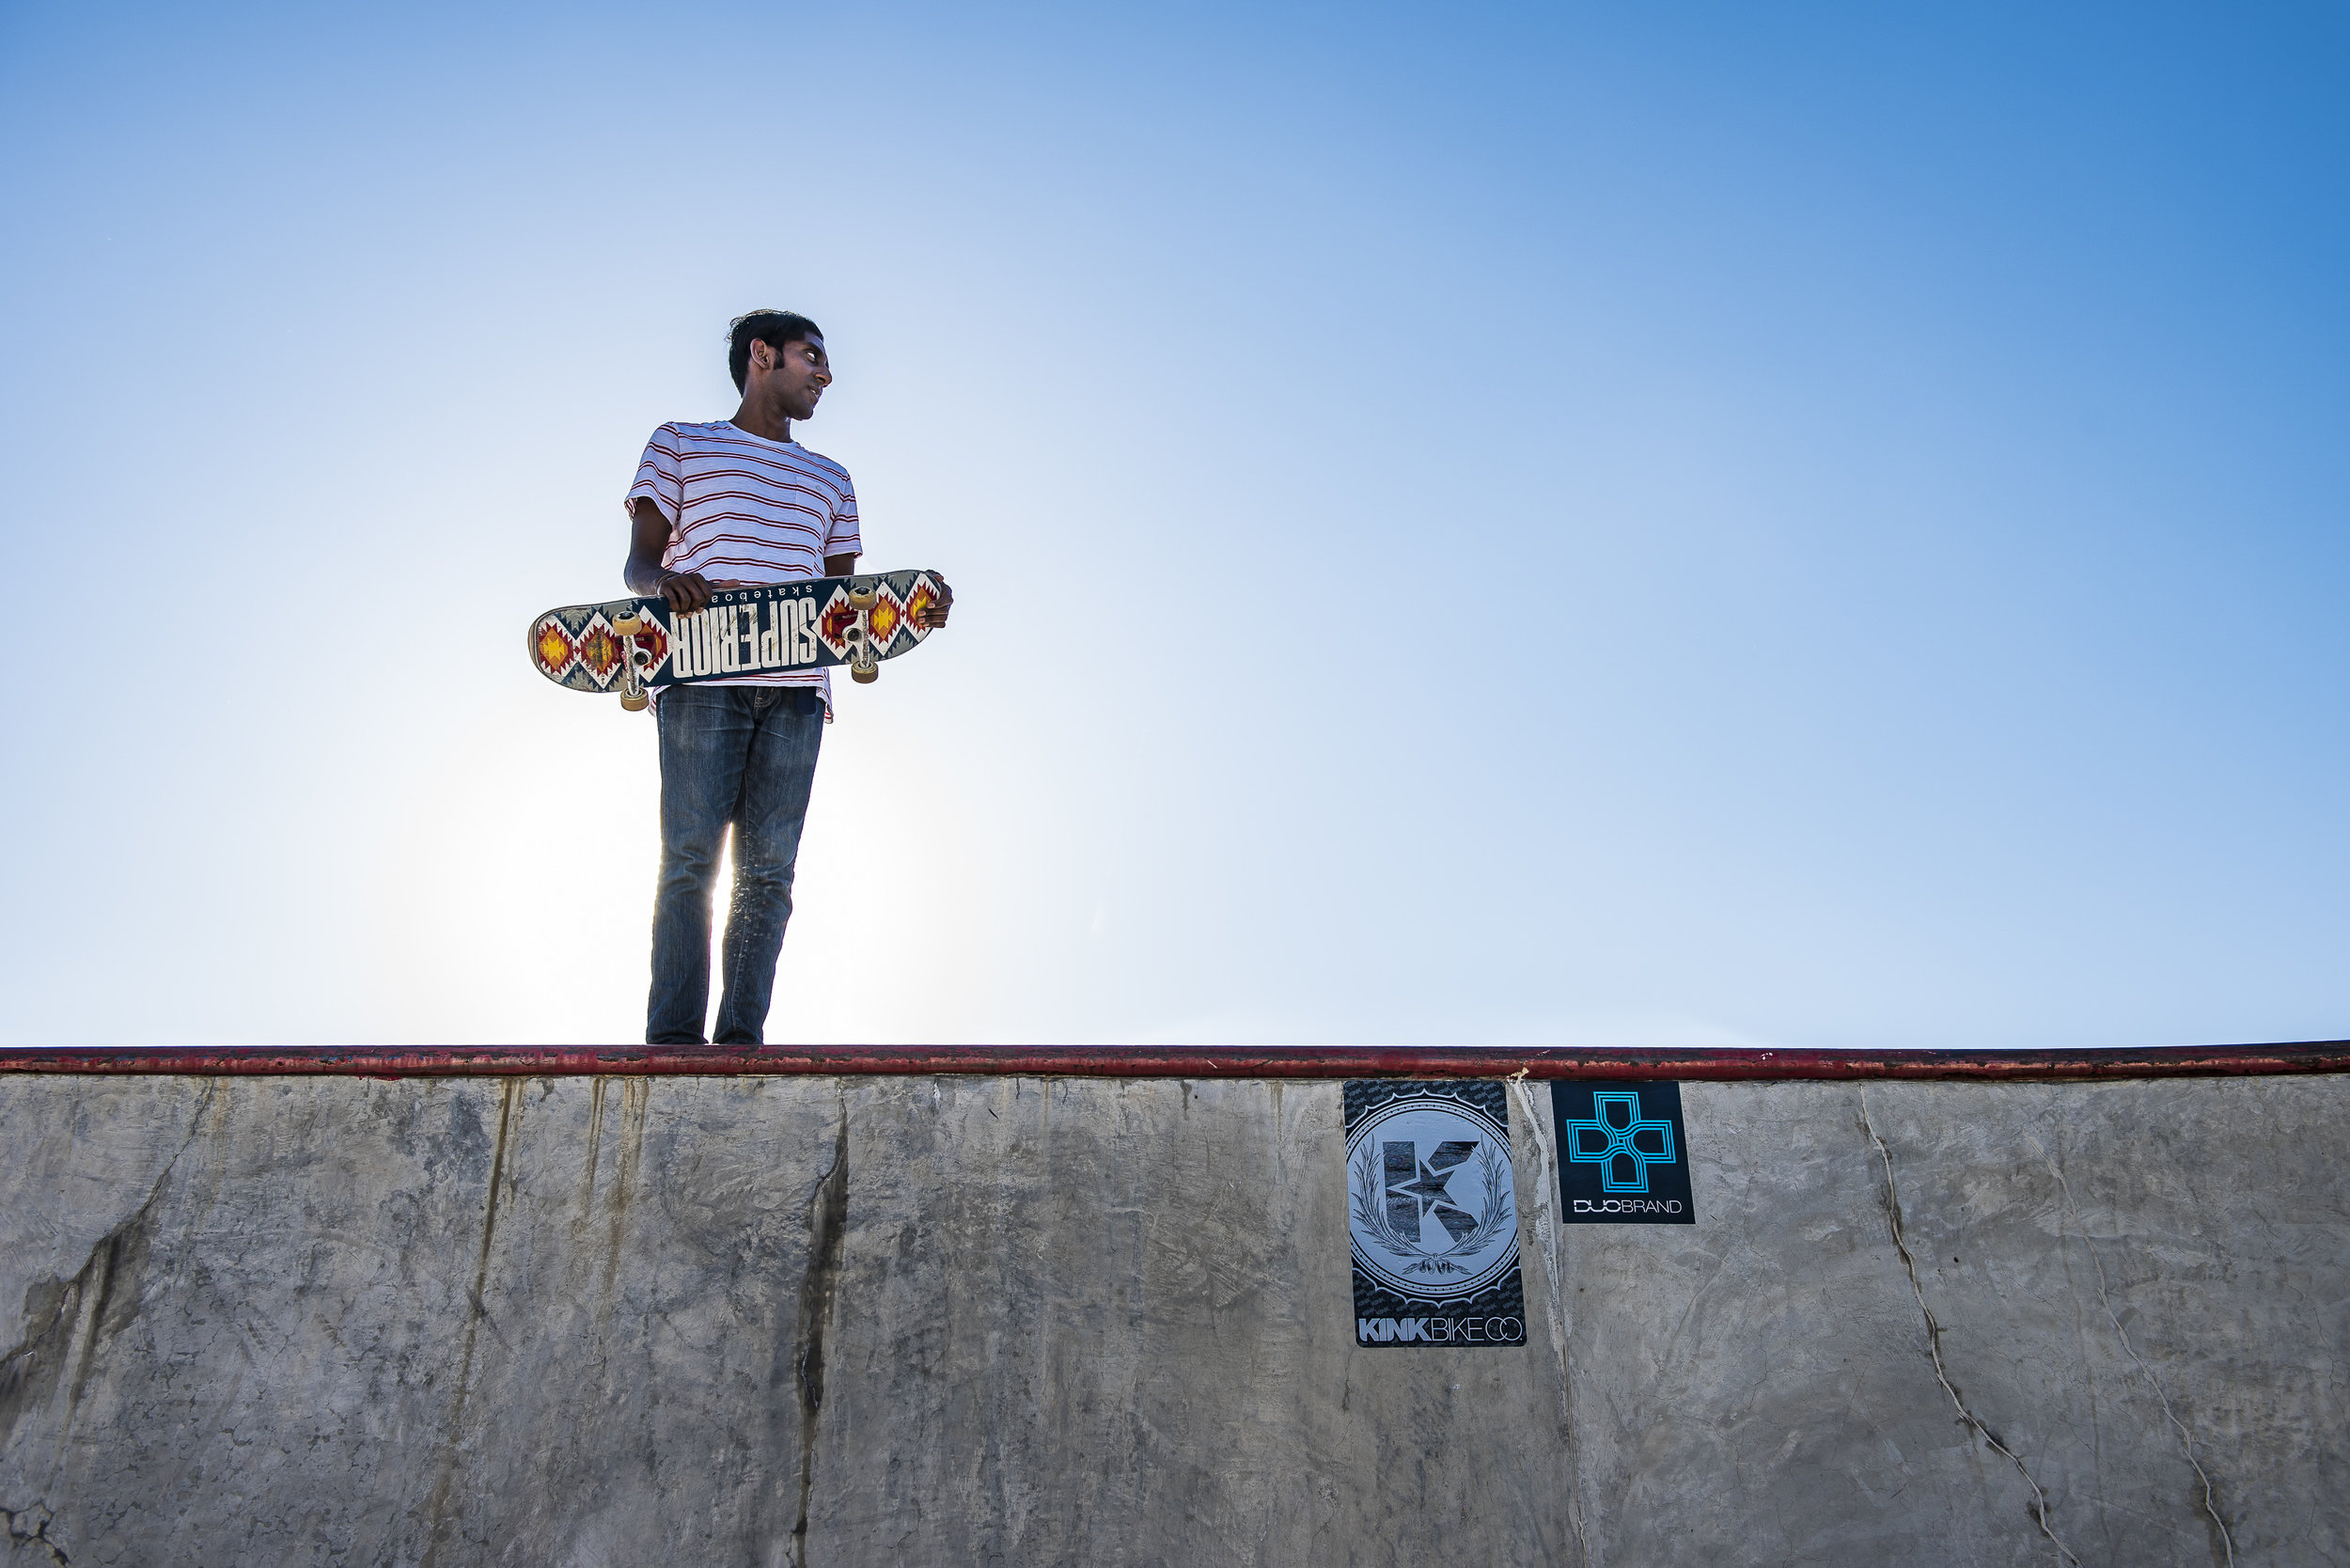 Jason_Skateboard_Mediate-9593.jpg